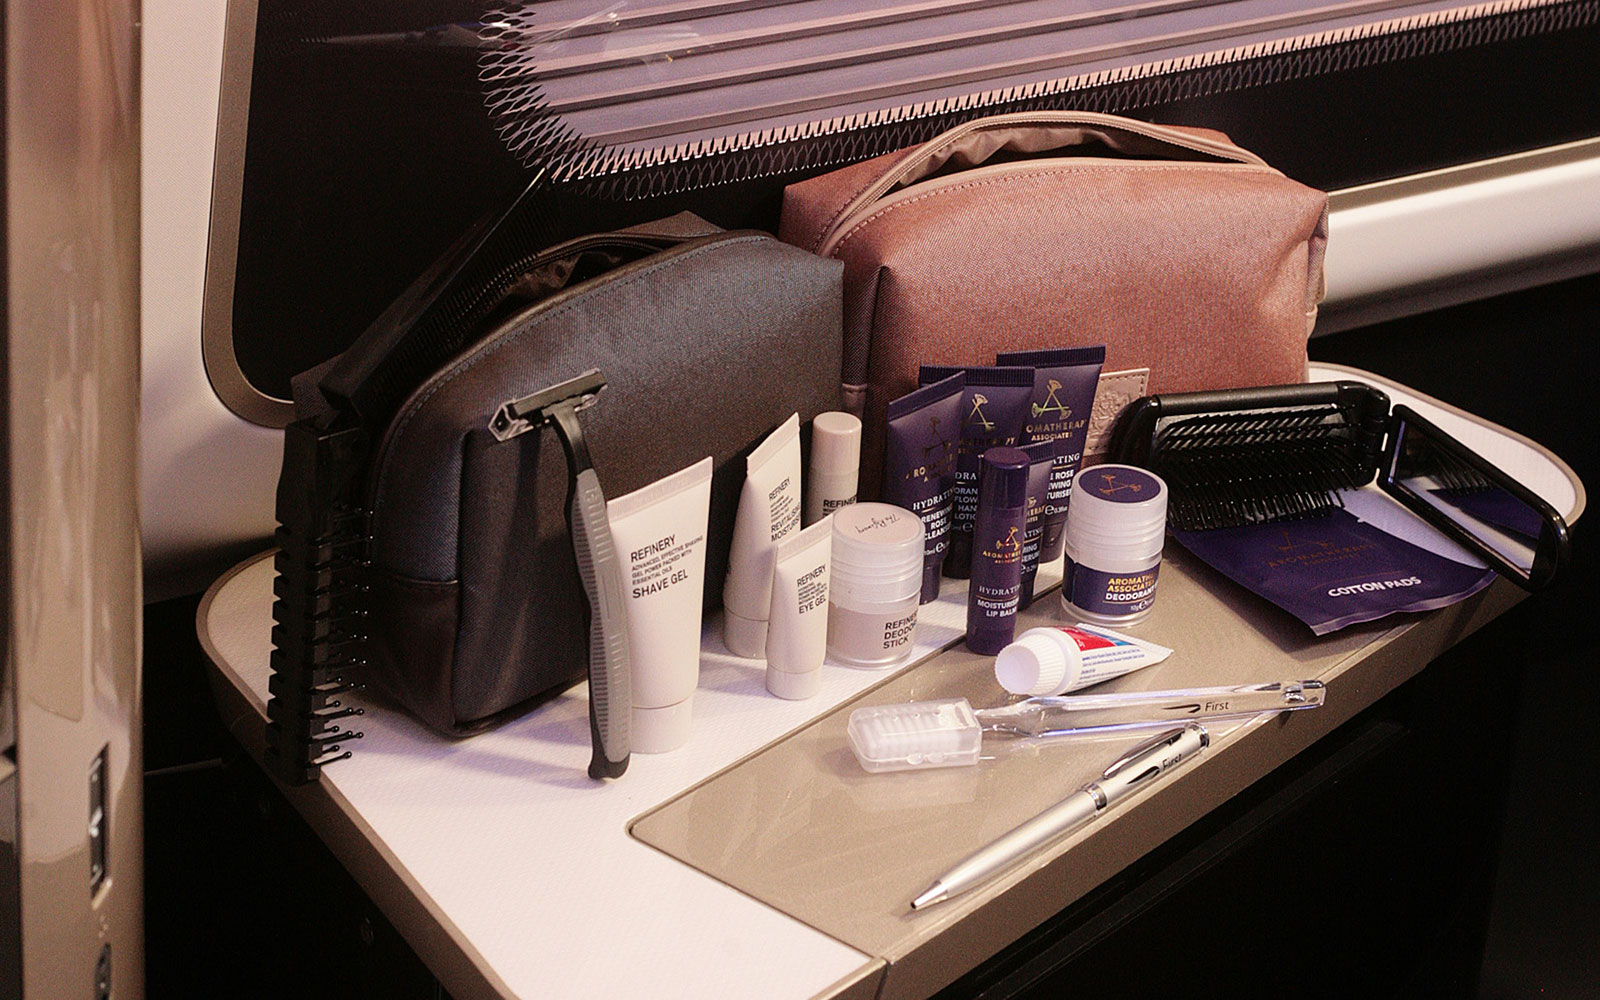 Coolest Airline Amenity Kits: British Airways - Men's and Women's First